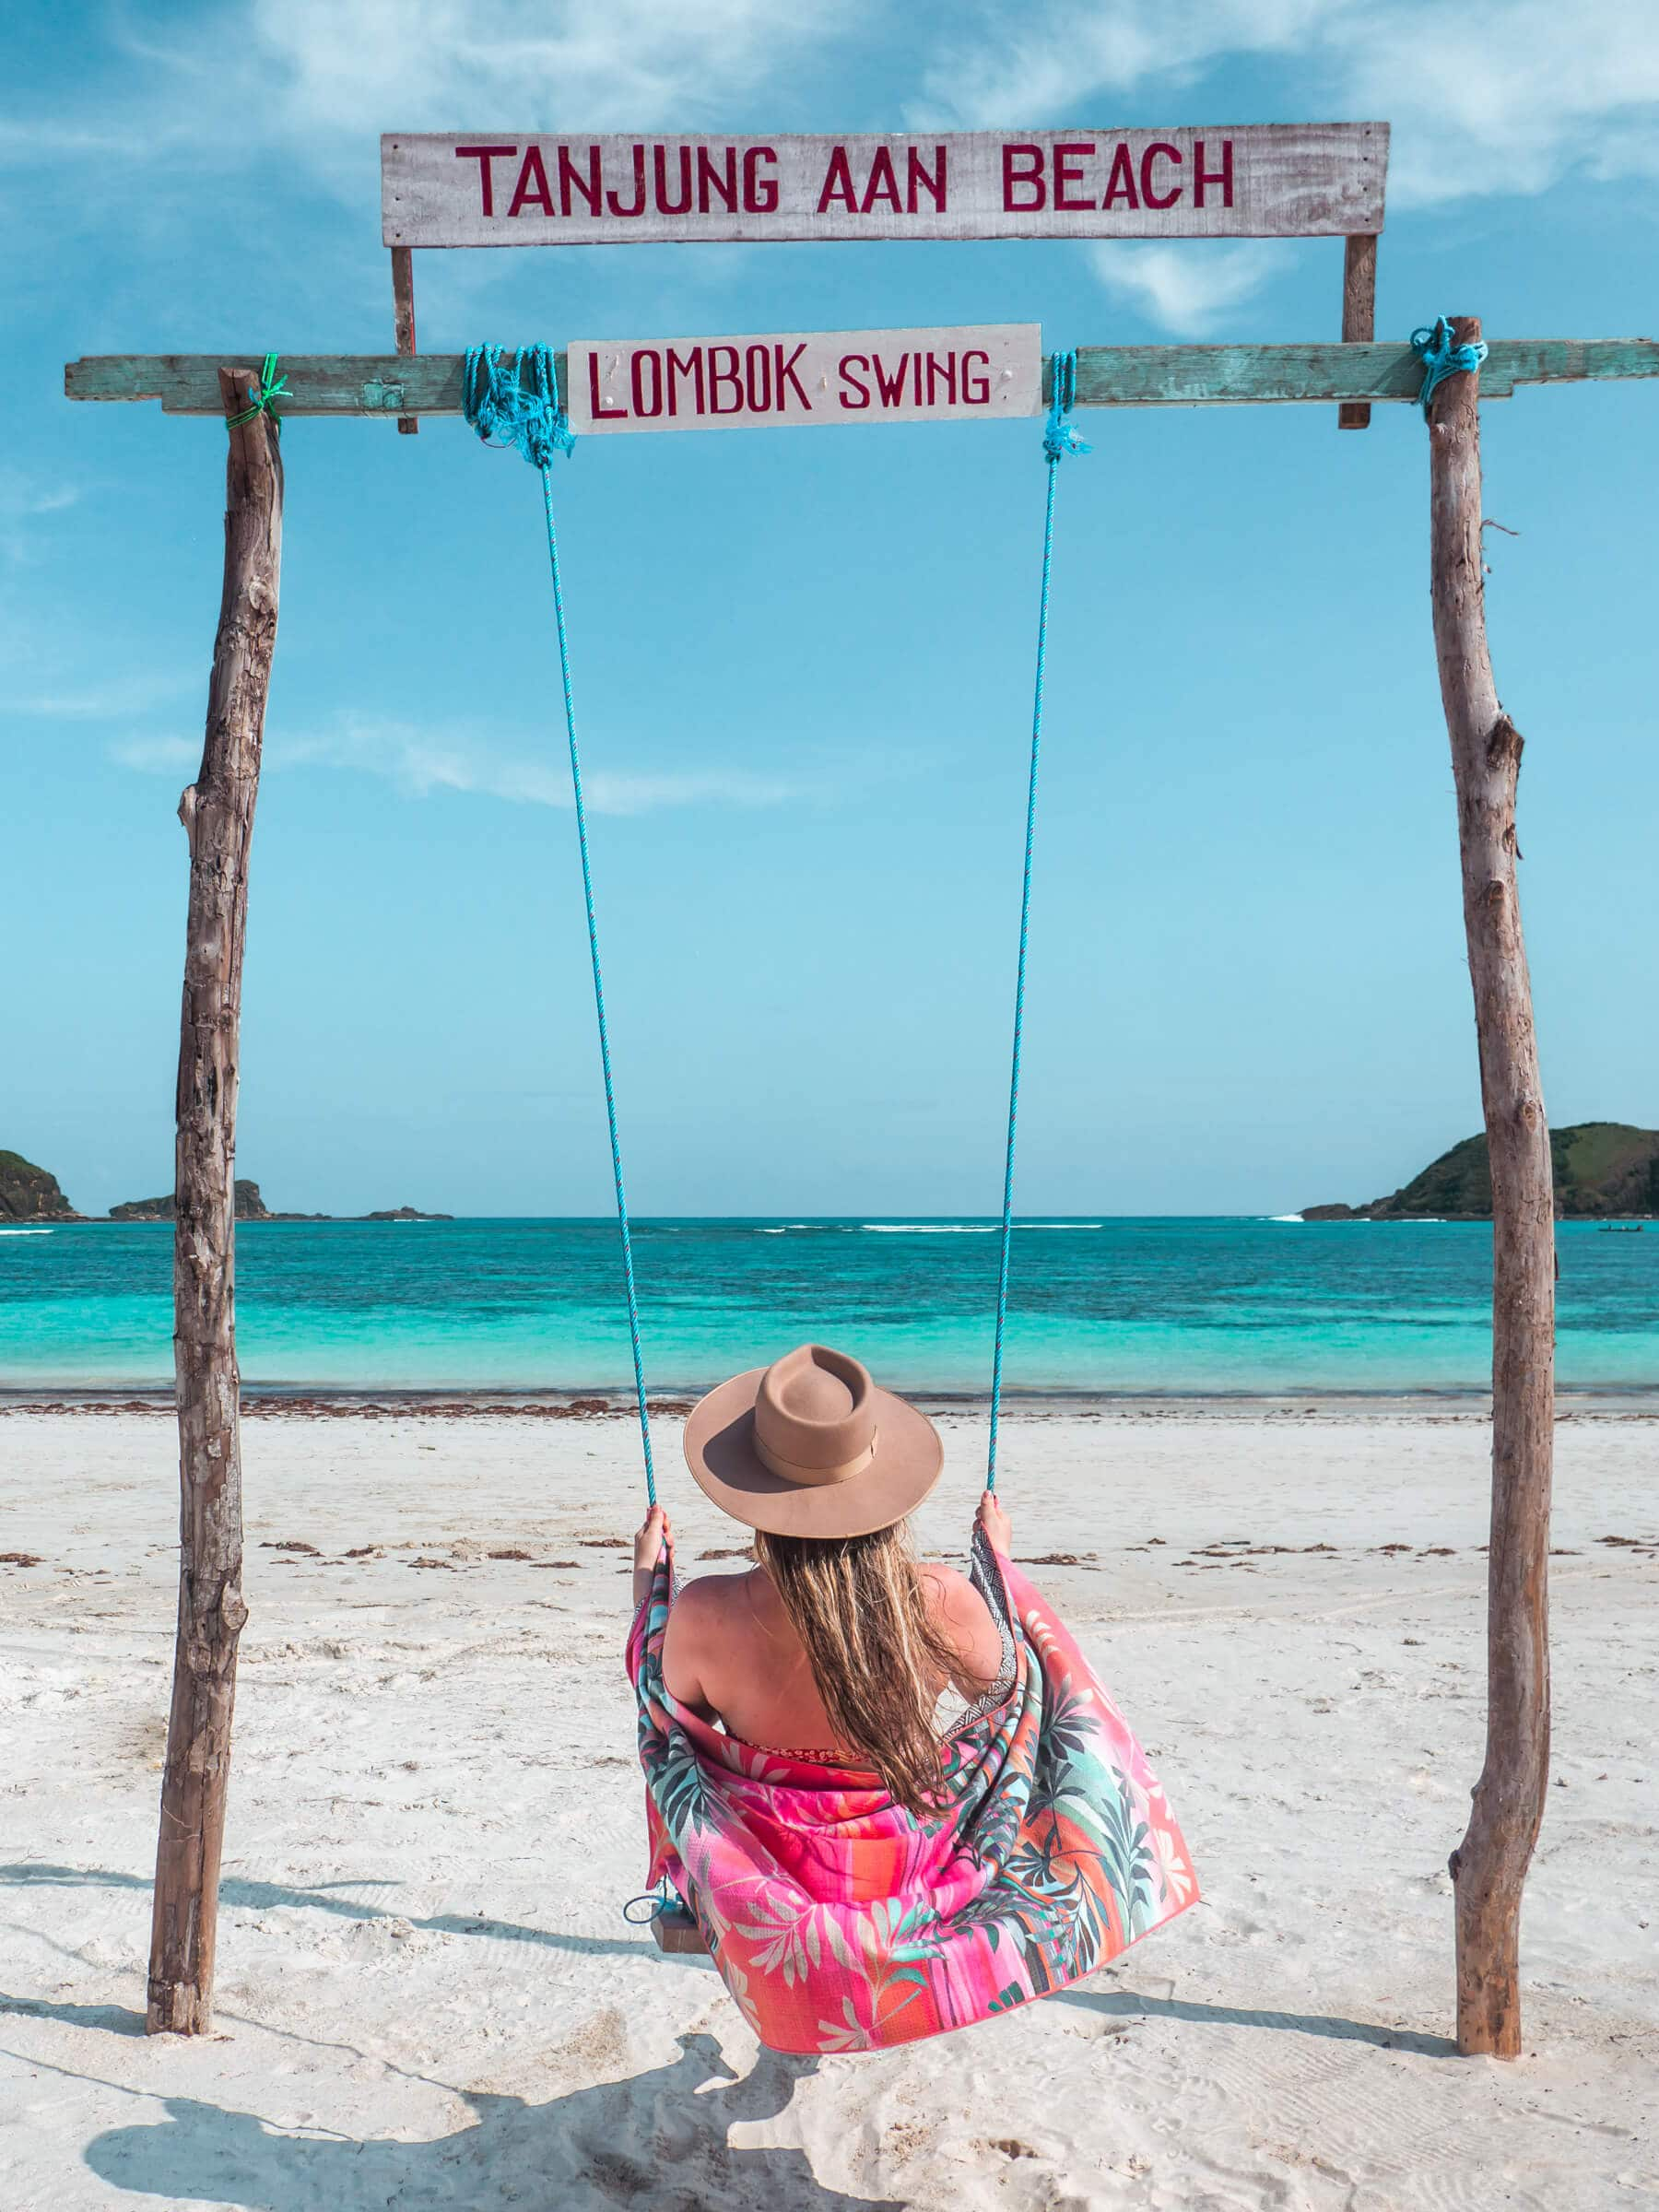 Follow along on our journey living in Kuta, Lombok for two months - Swing on Tanjung Aan Beach #lombok #kuta #indonesia #travelinspo #bucketlist